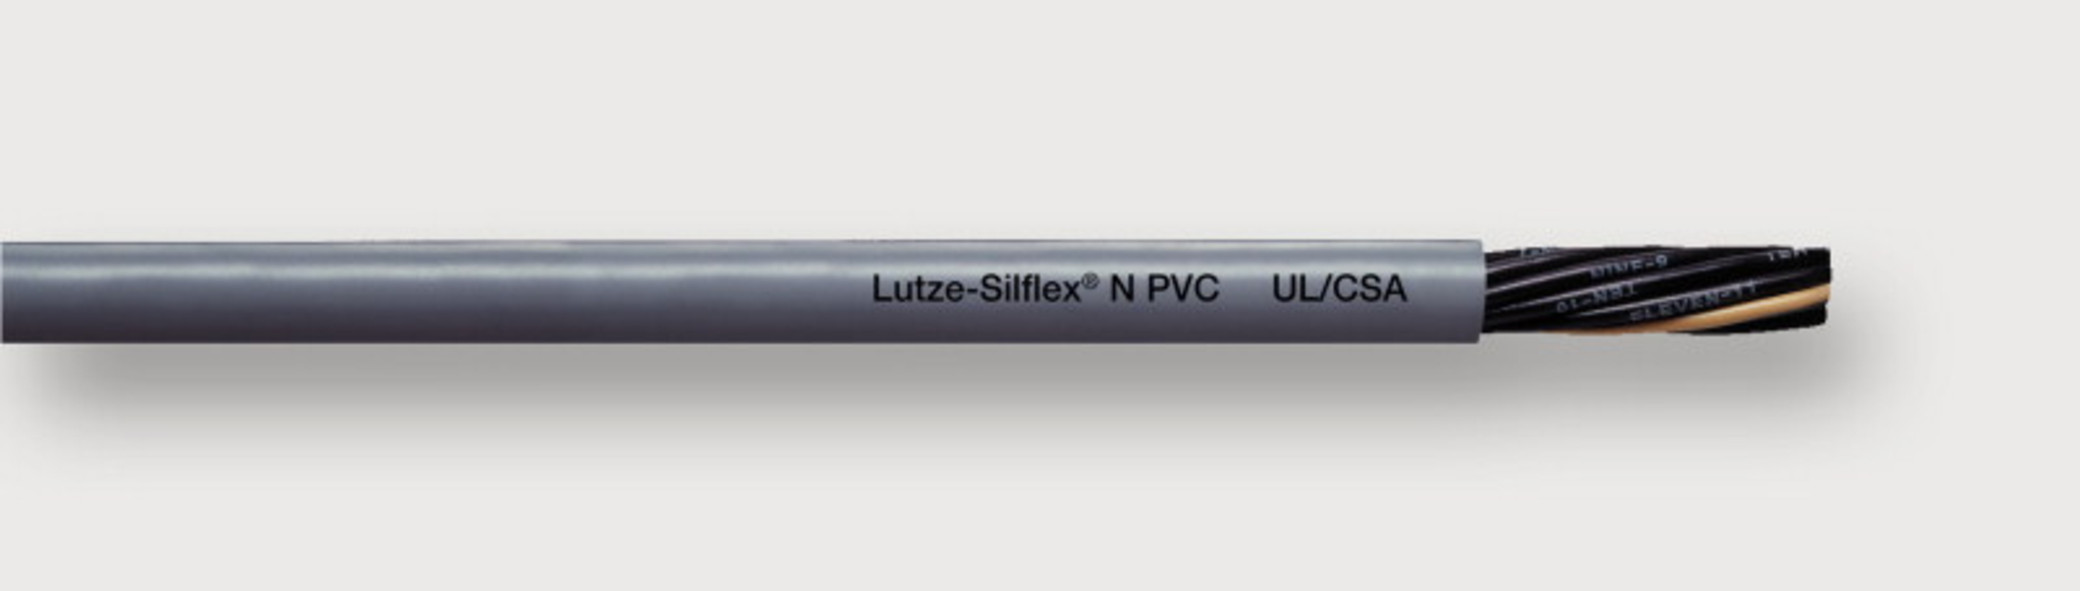 108361A - LÜTZE SILFLEX® N PVC with UL/CE Approvals